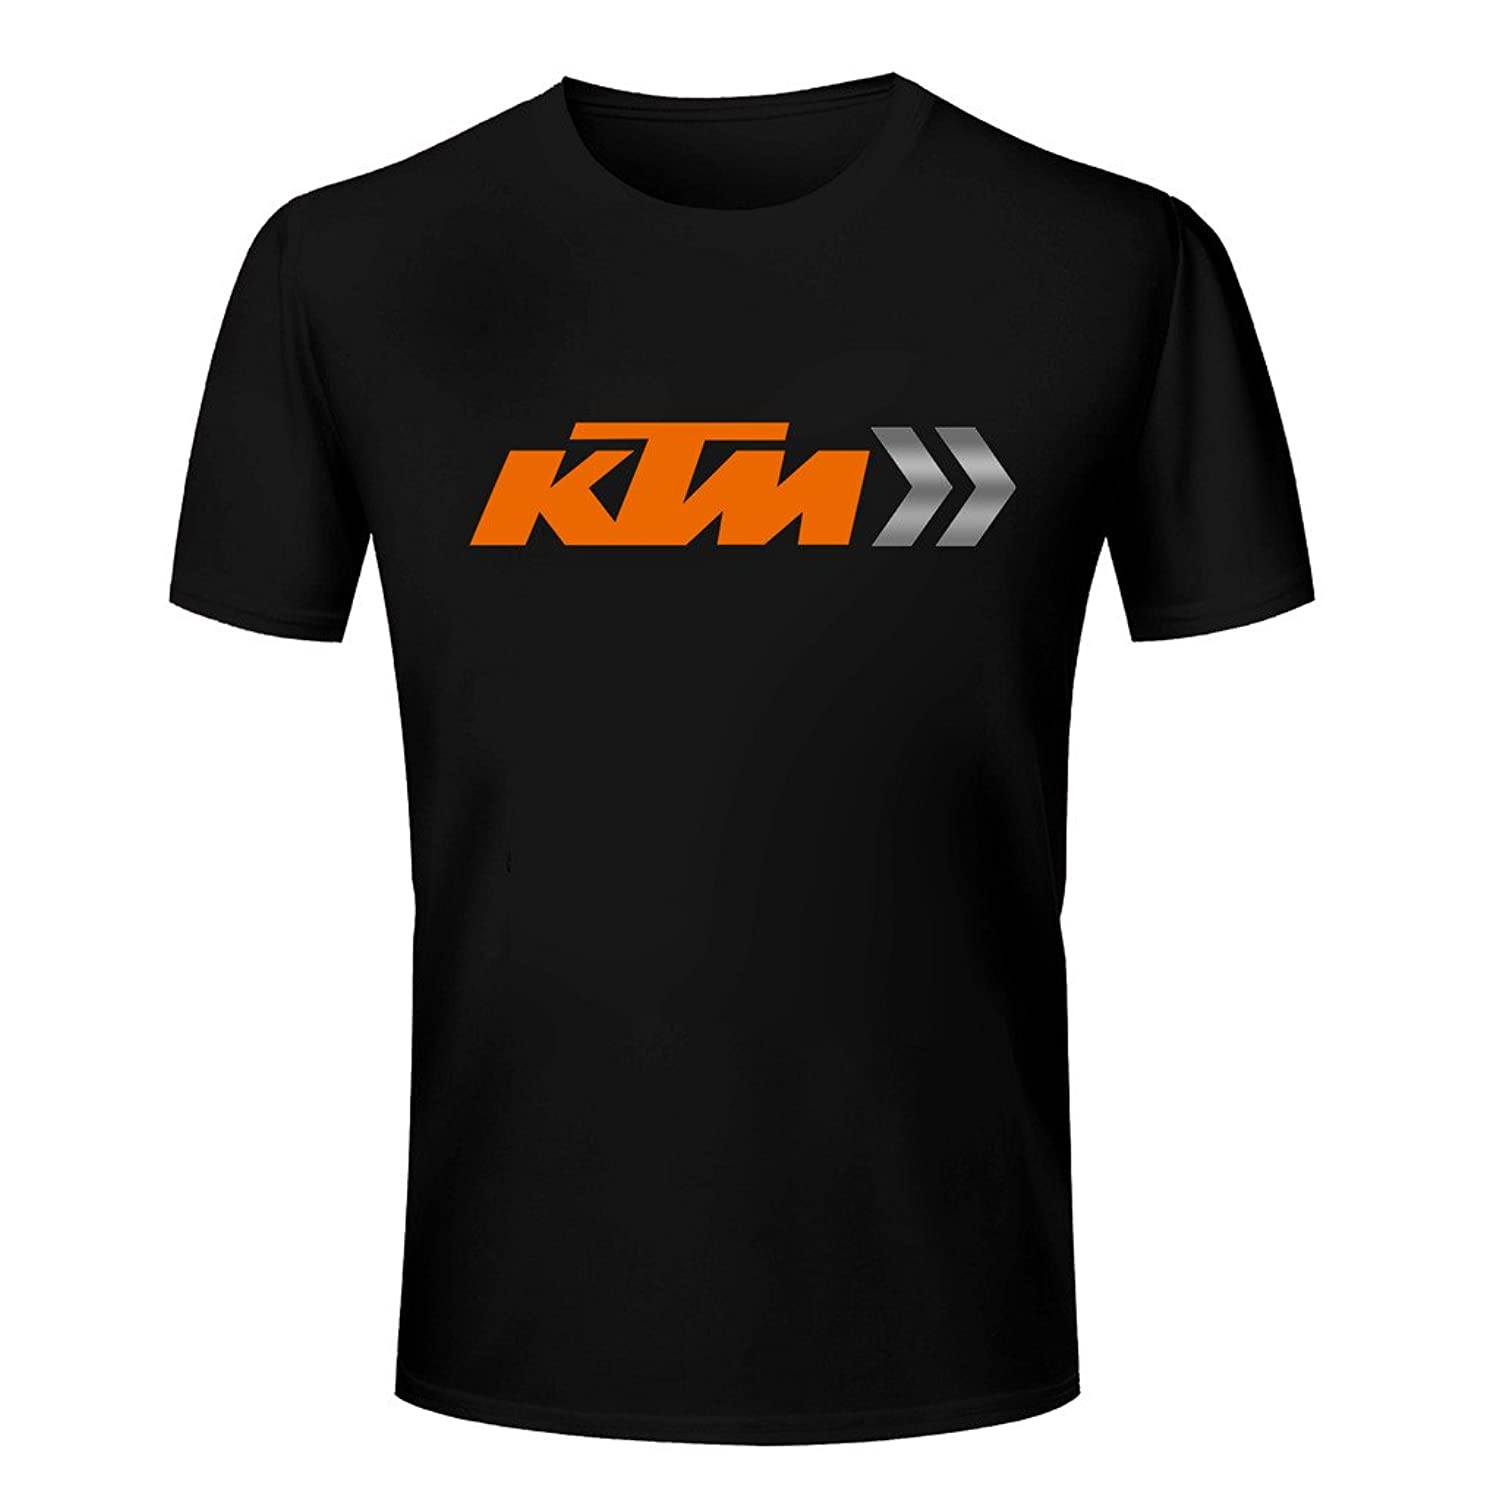 ktm t shirt amazon india one checklist that you should keep in mind before attending ktm t. Black Bedroom Furniture Sets. Home Design Ideas